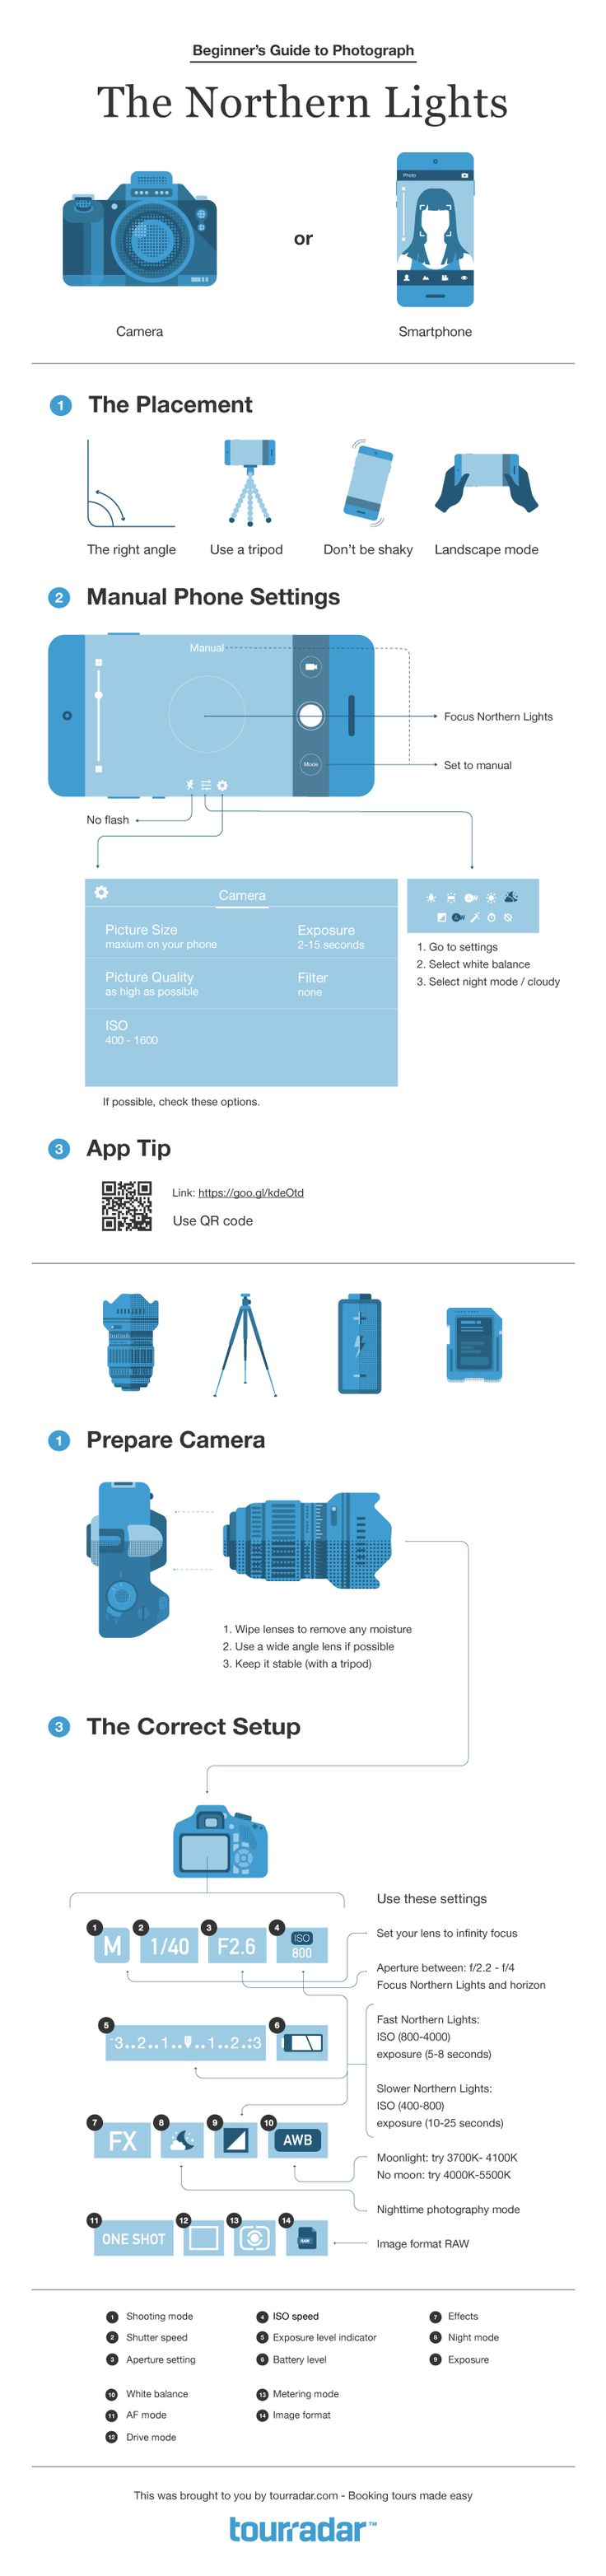 Northern Lights Photography with iPhone Smartphone Camera - Infographic